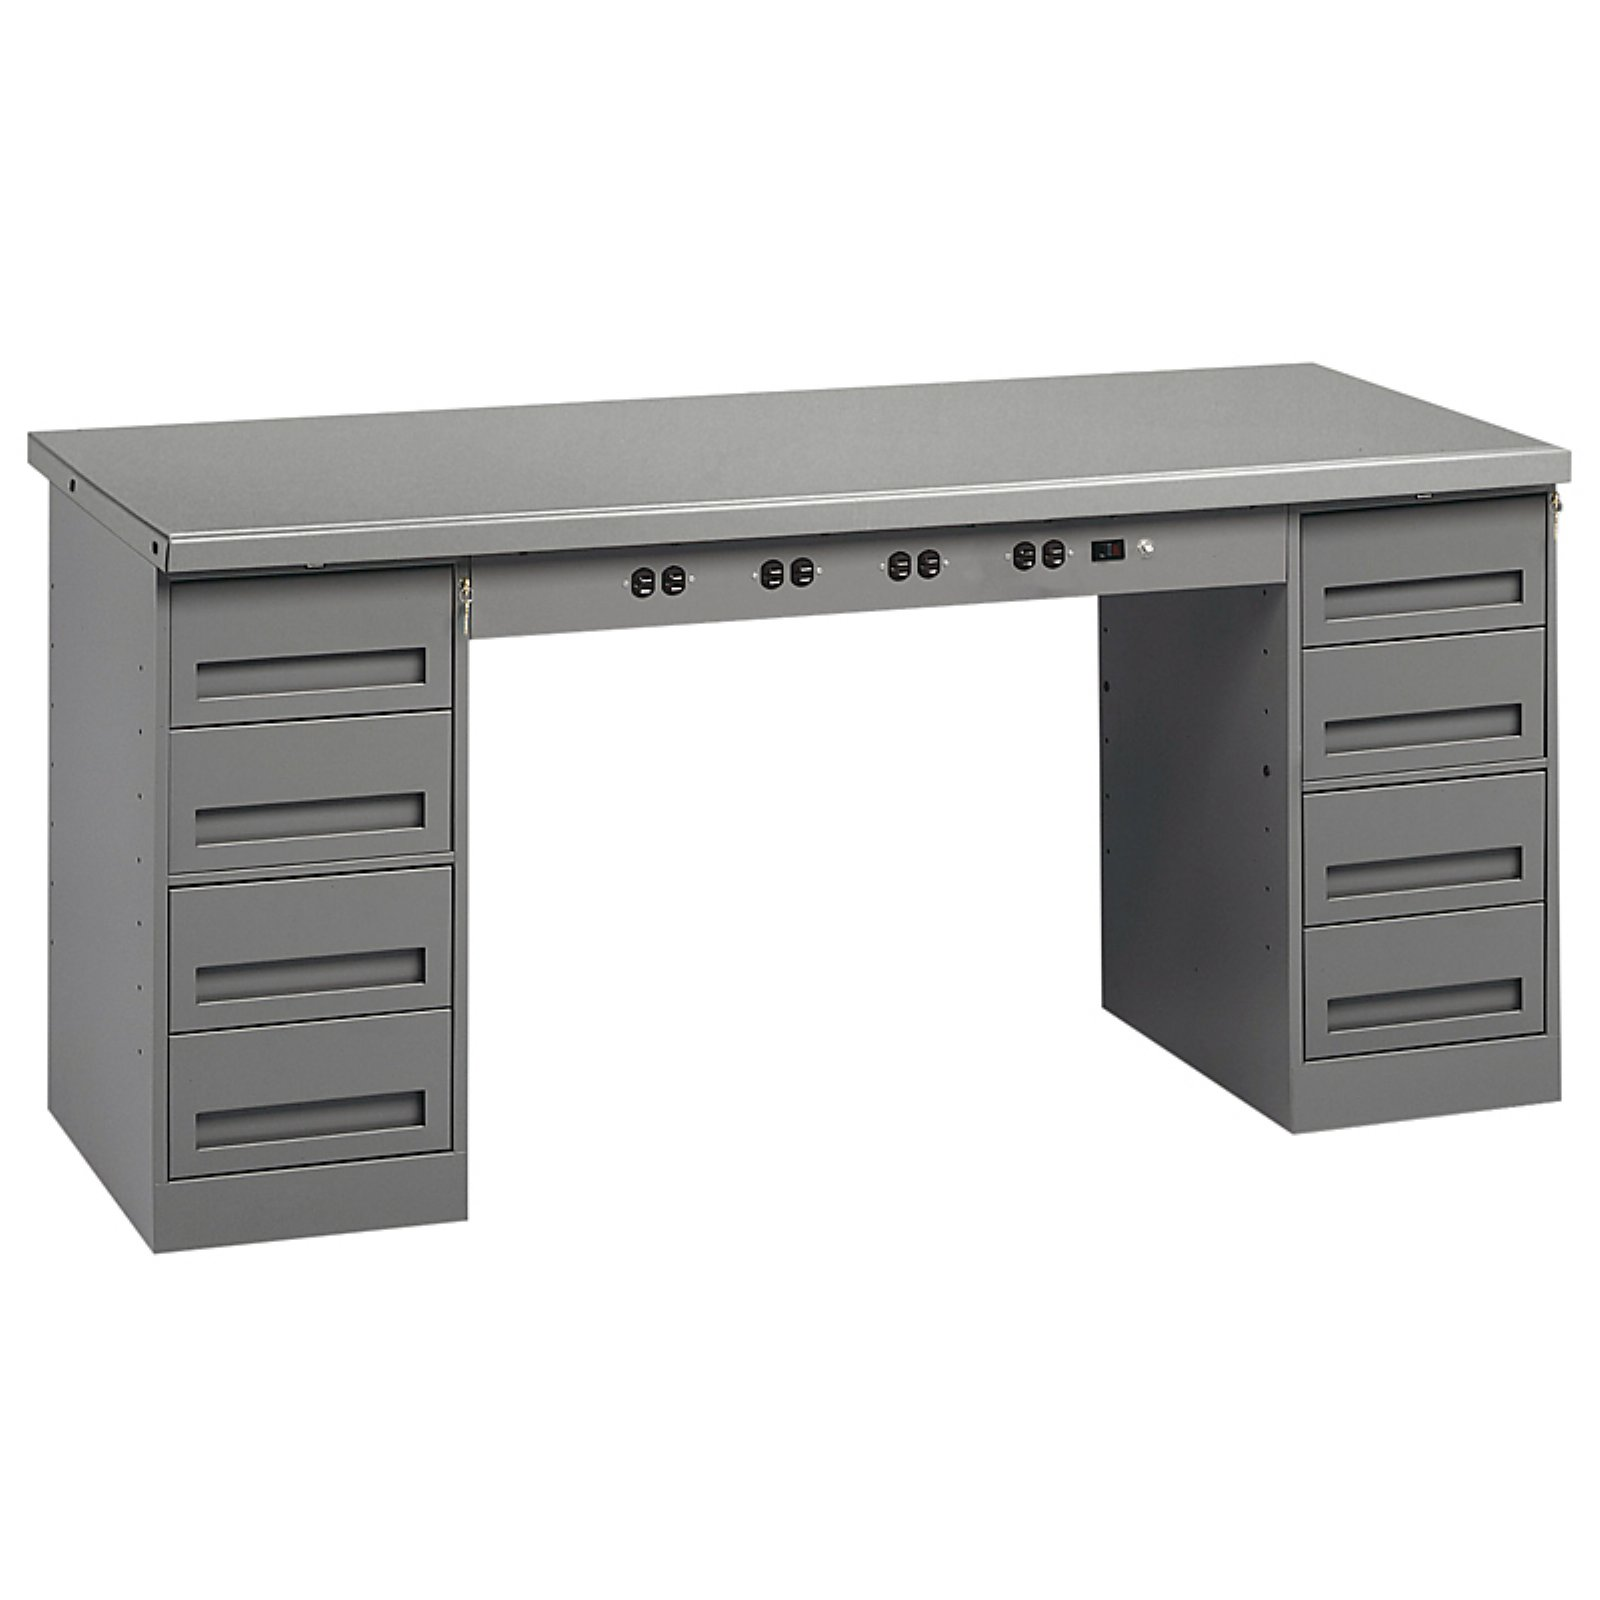 Tennsco Electronic Solid Steel Top Modular Workbench with Drawers by Tennsco Corp